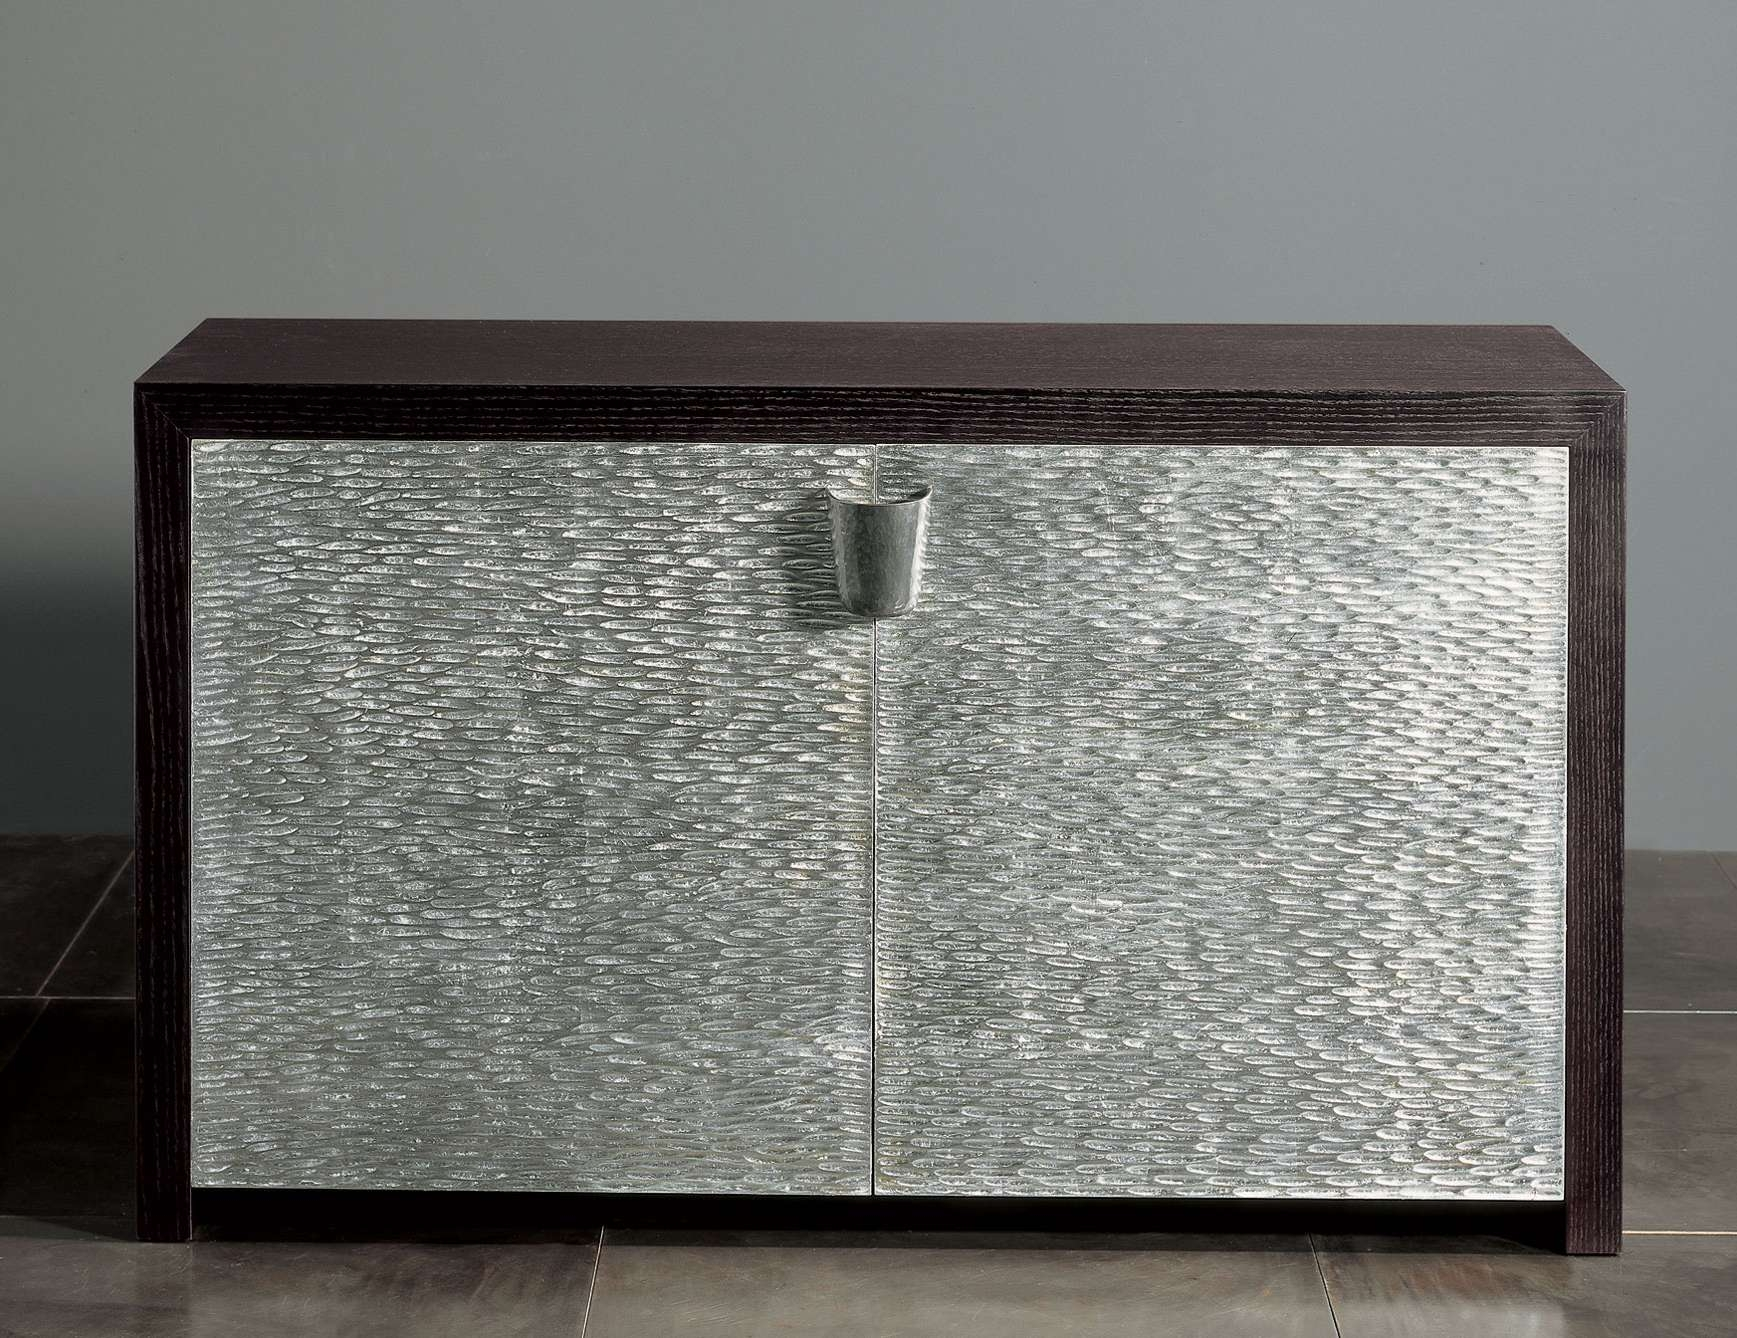 Nella Vetrina Rugiano Shiroma 6027 Wenge Silver Sideboard Intended For Black And Silver Sideboards (View 13 of 20)